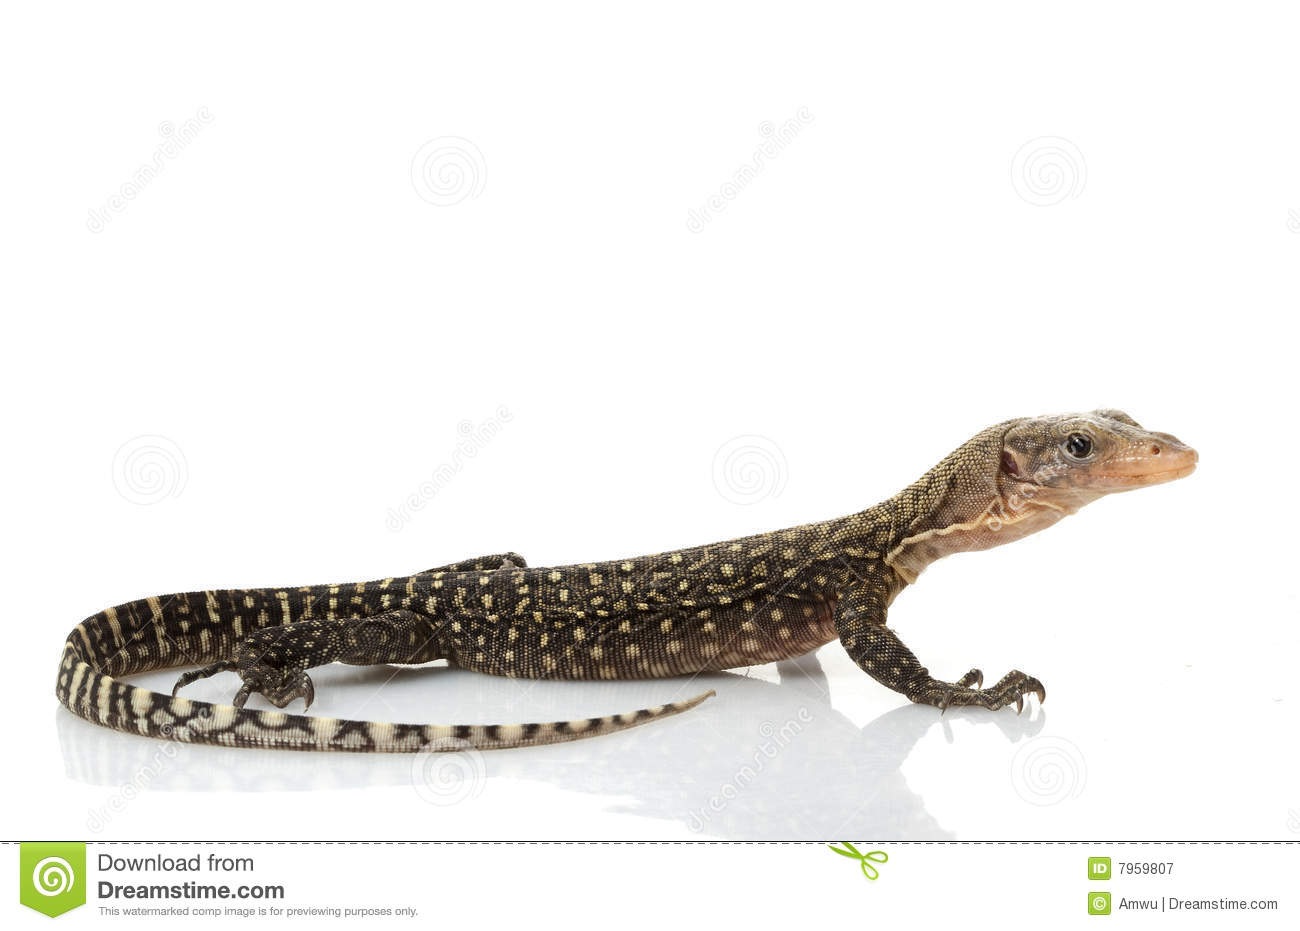 Monitor Lizard clipart #13, Download drawings